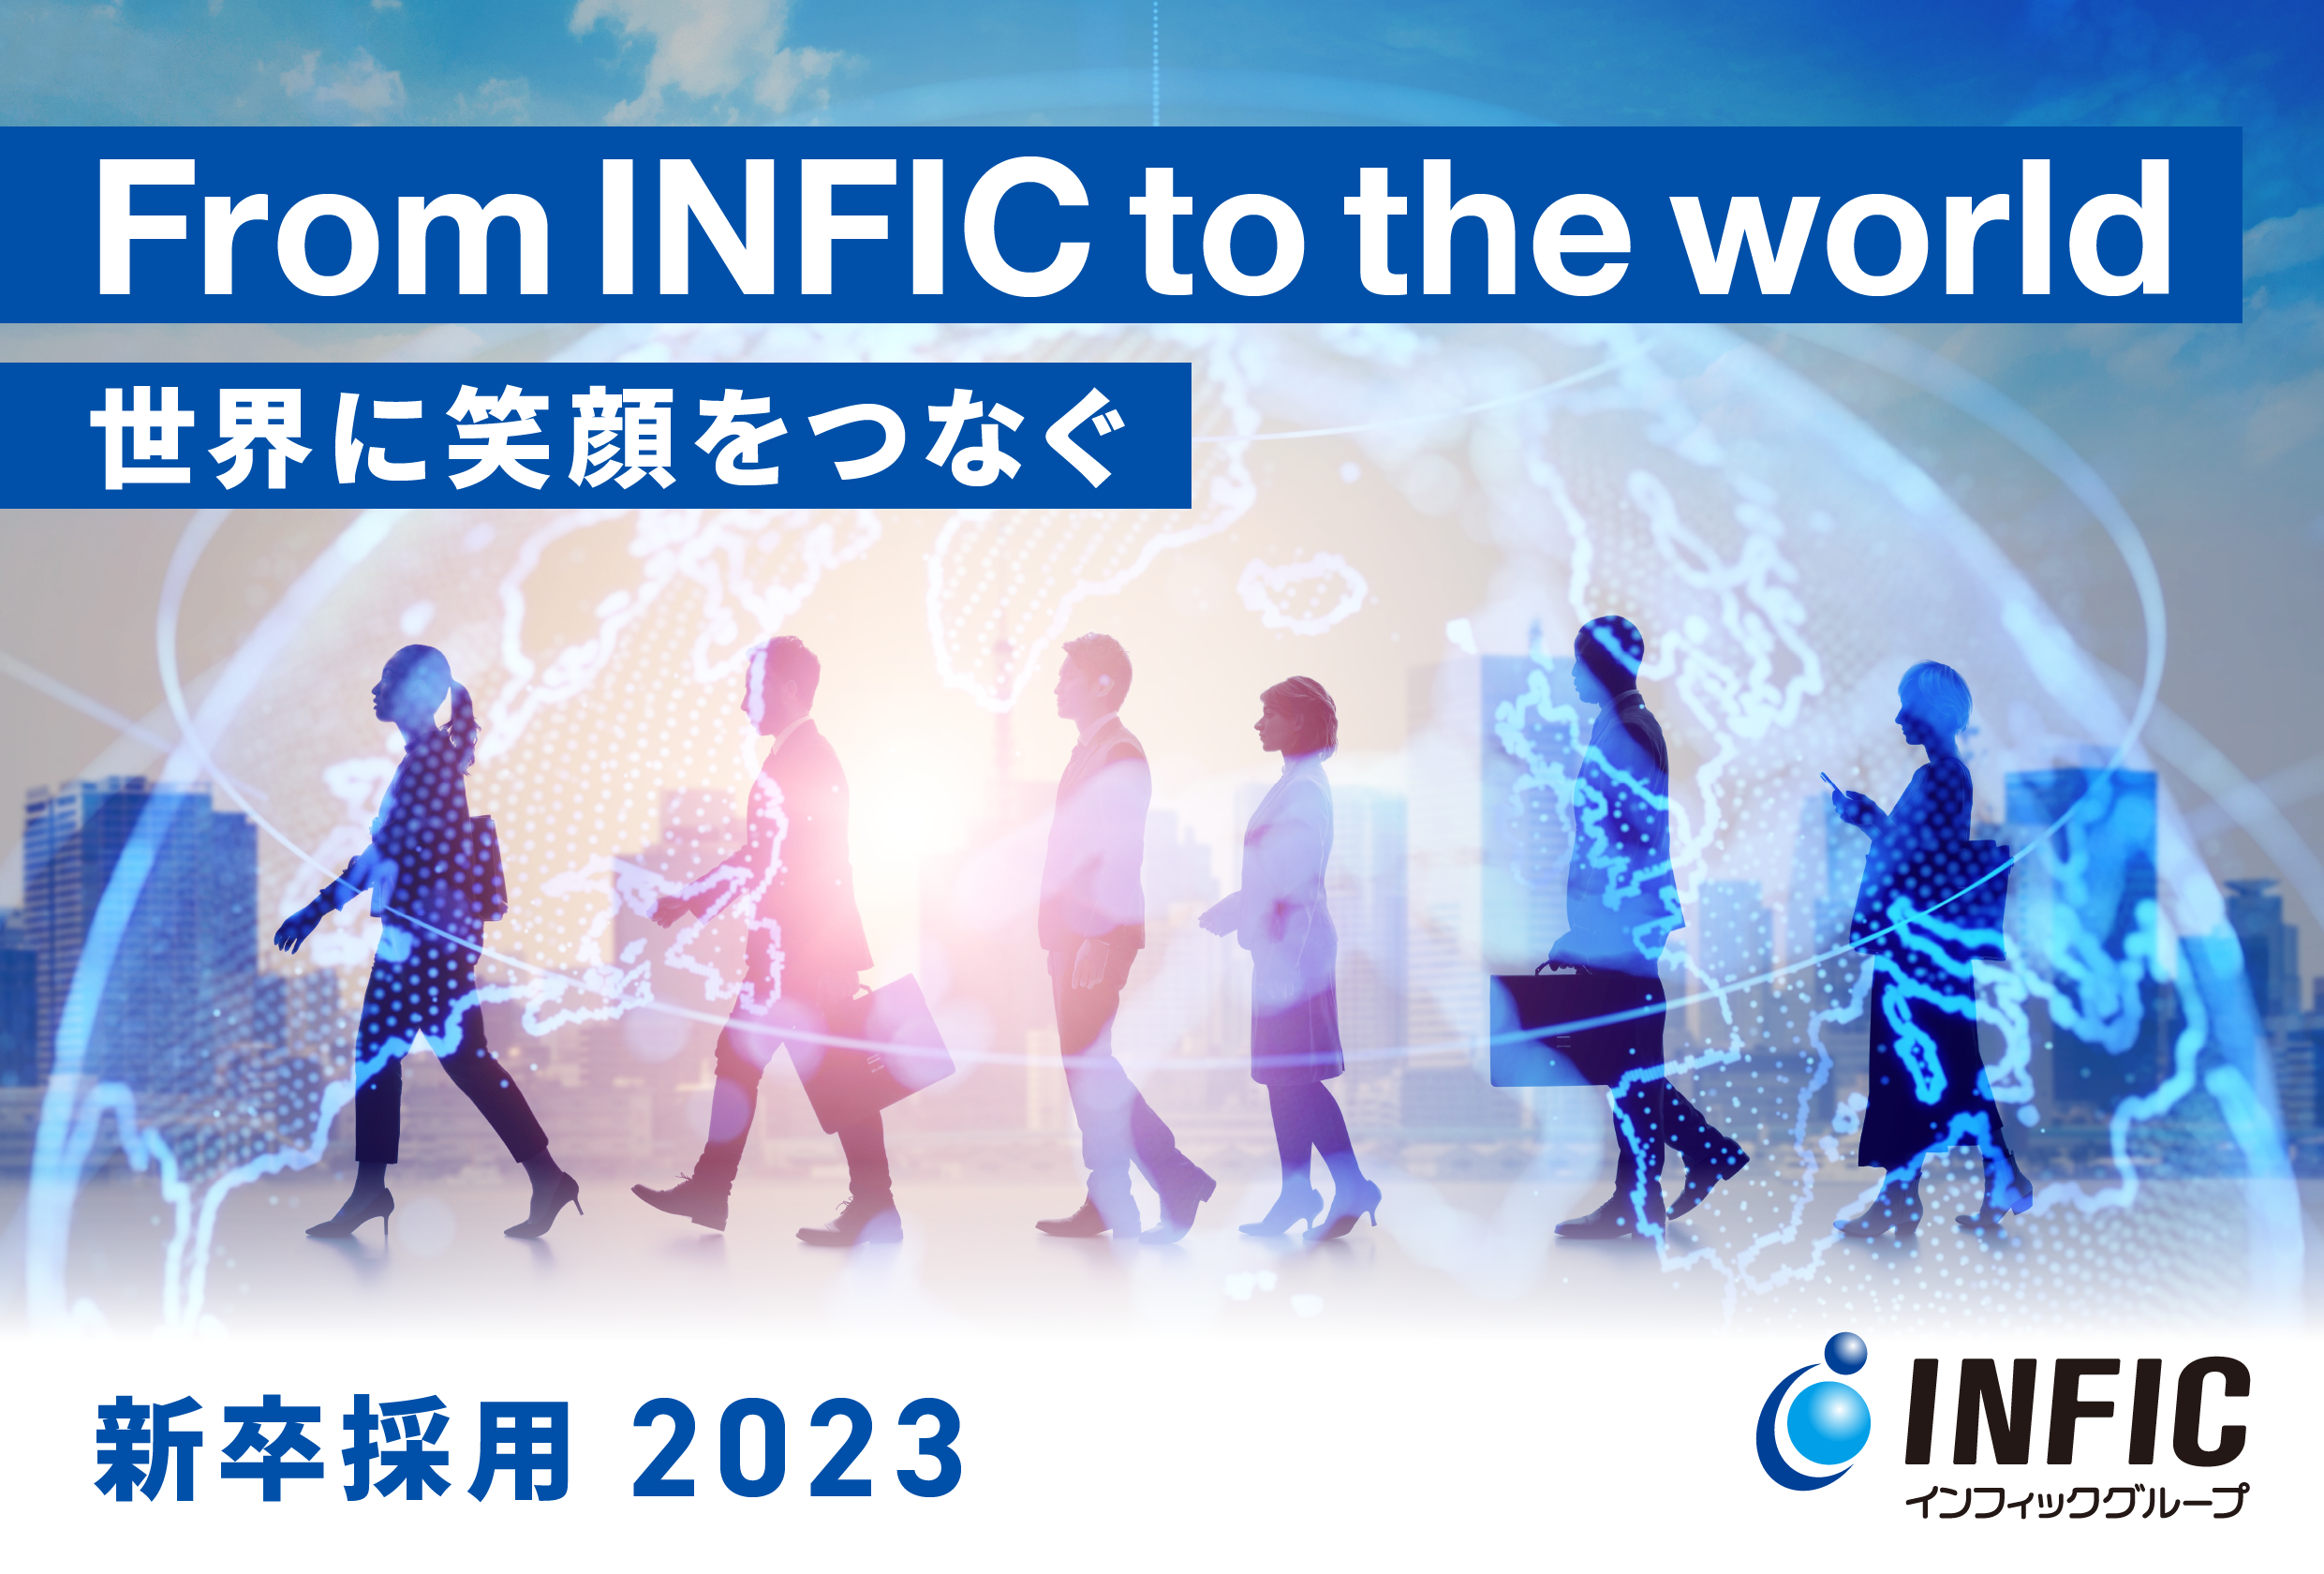 From Infic to the world